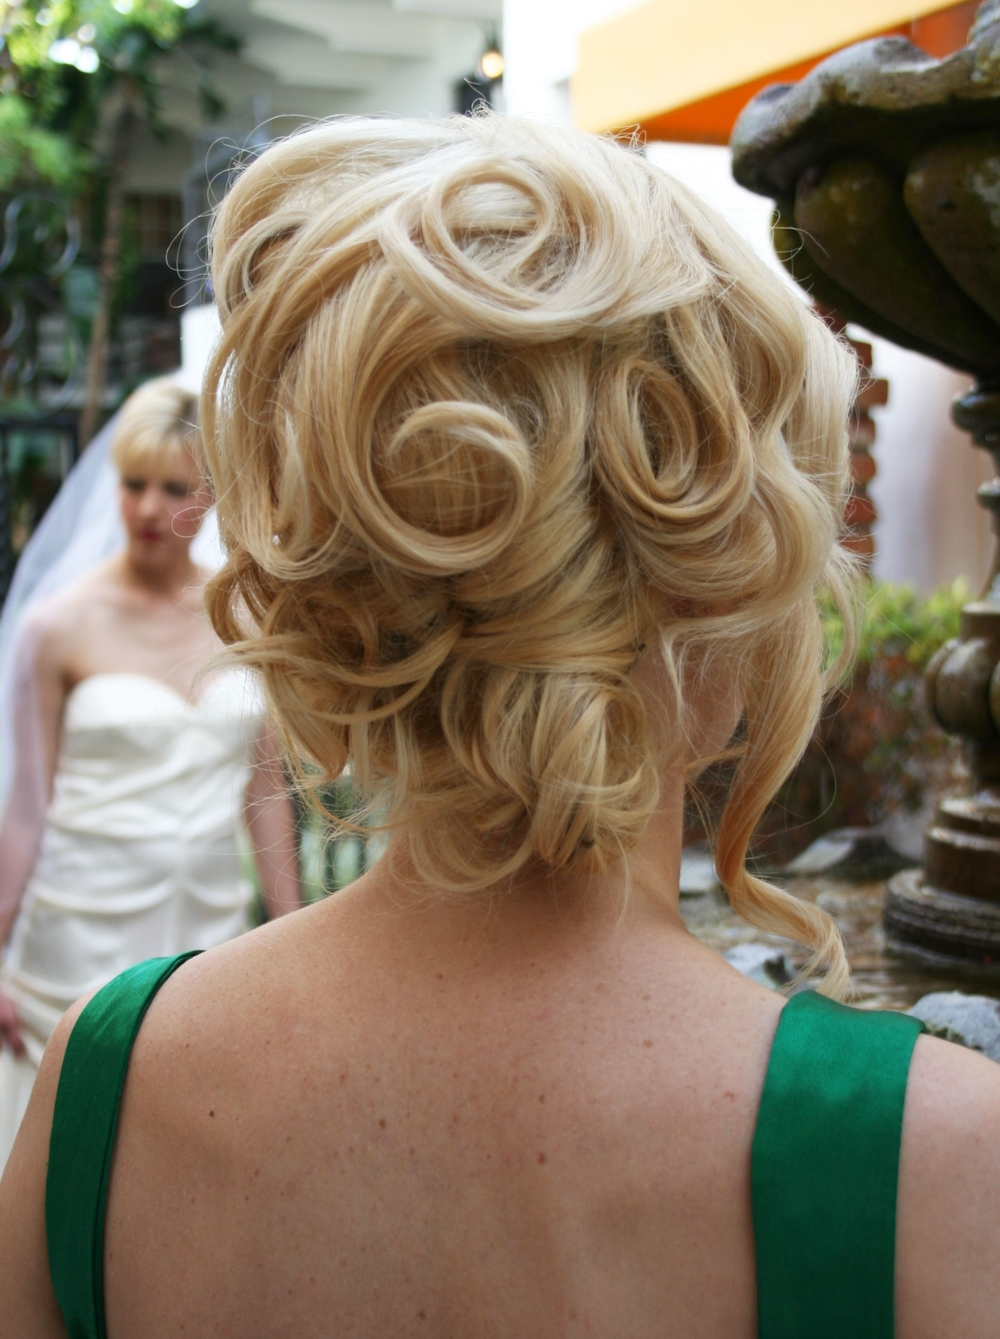 event-gatsby-theme-updo-bridesmaid-bridal-blonde-short-hair-curls.jpg